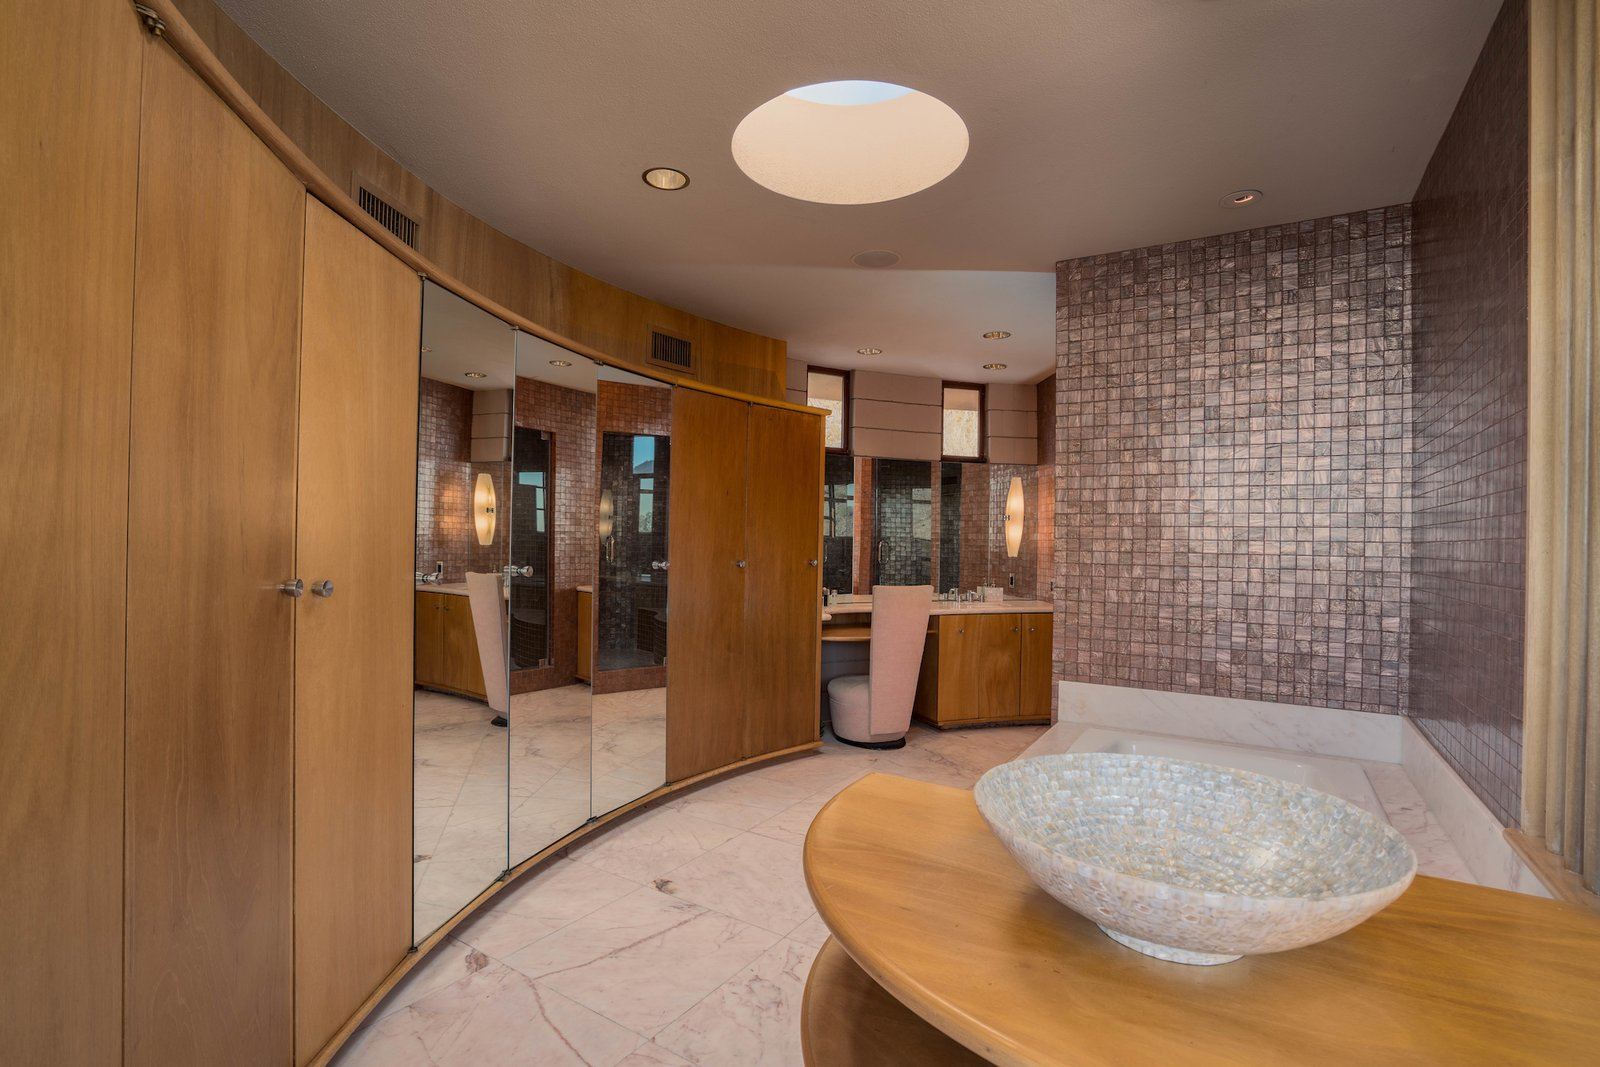 Bath Room, Alcove Tub, Recessed Lighting, and Mosaic Tile Wall  Photo 15 of 15 in The Last House Designed by Frank Lloyd Wright Is Being Auctioned Without Reserve